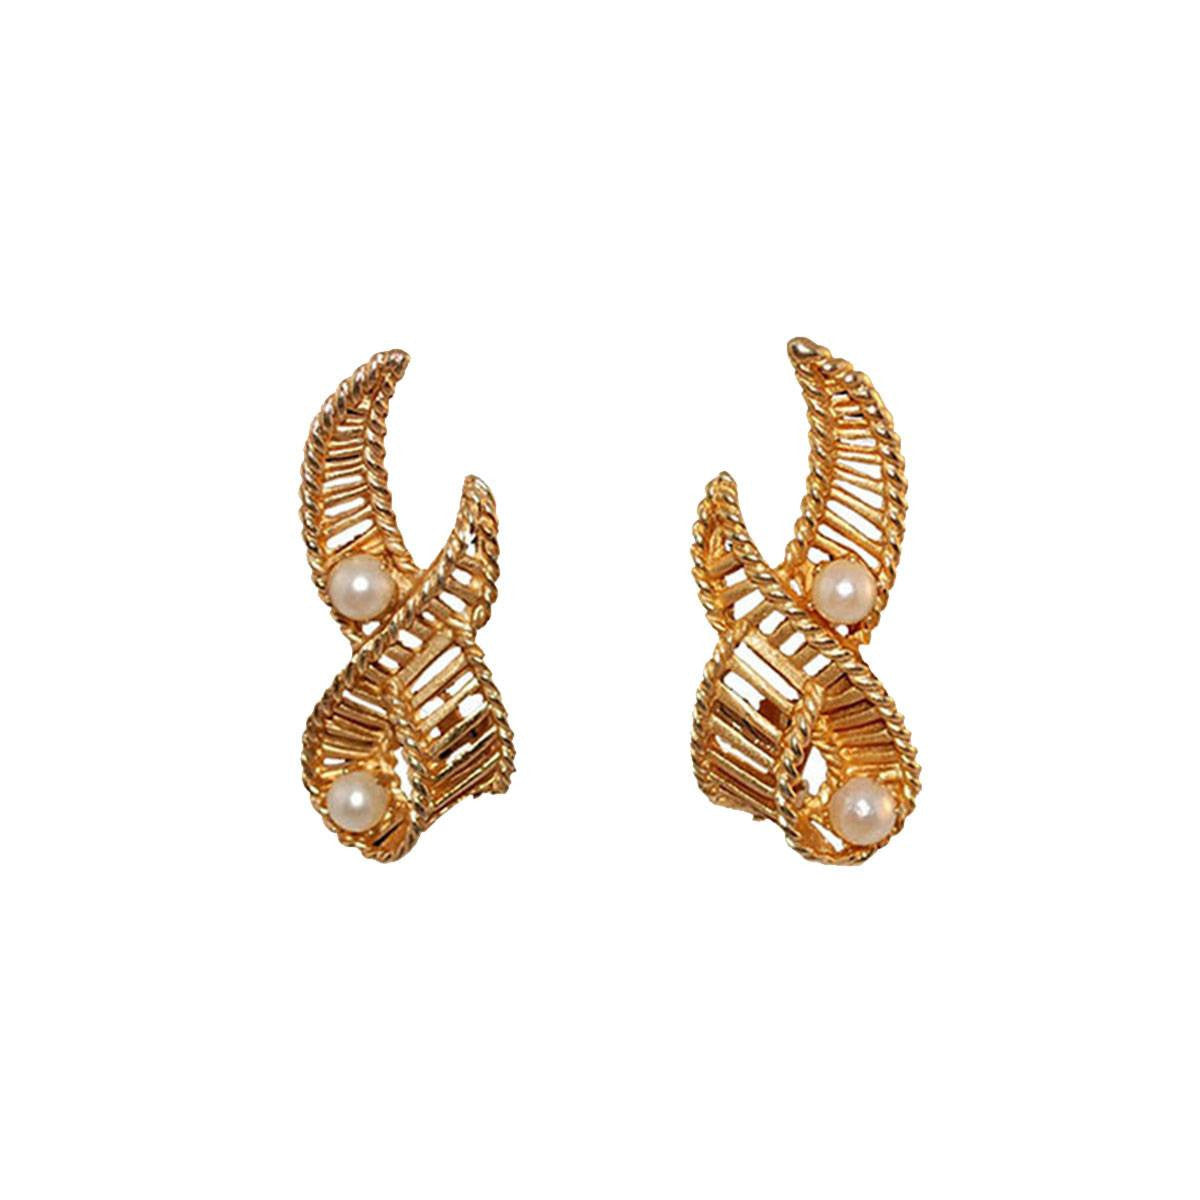 Kramer Pearl & Gold Ribbon earrings